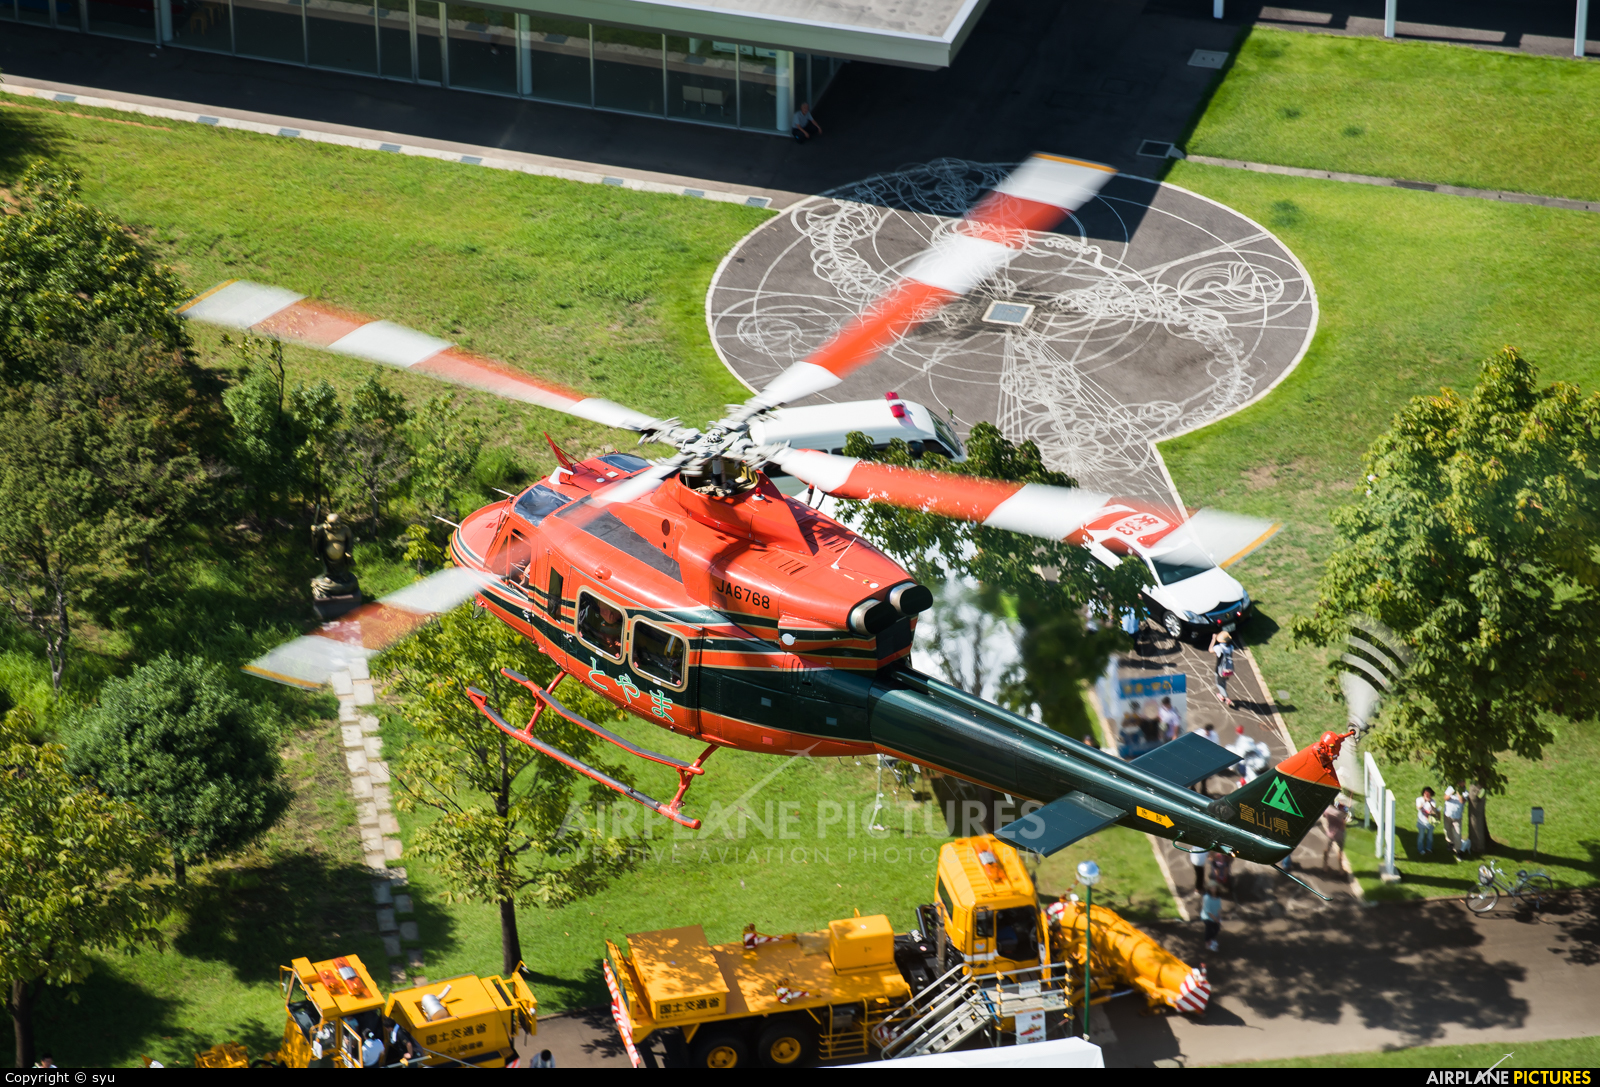 Toyama Prefecture Air Rescue JA6768 aircraft at Off Airport - Japan